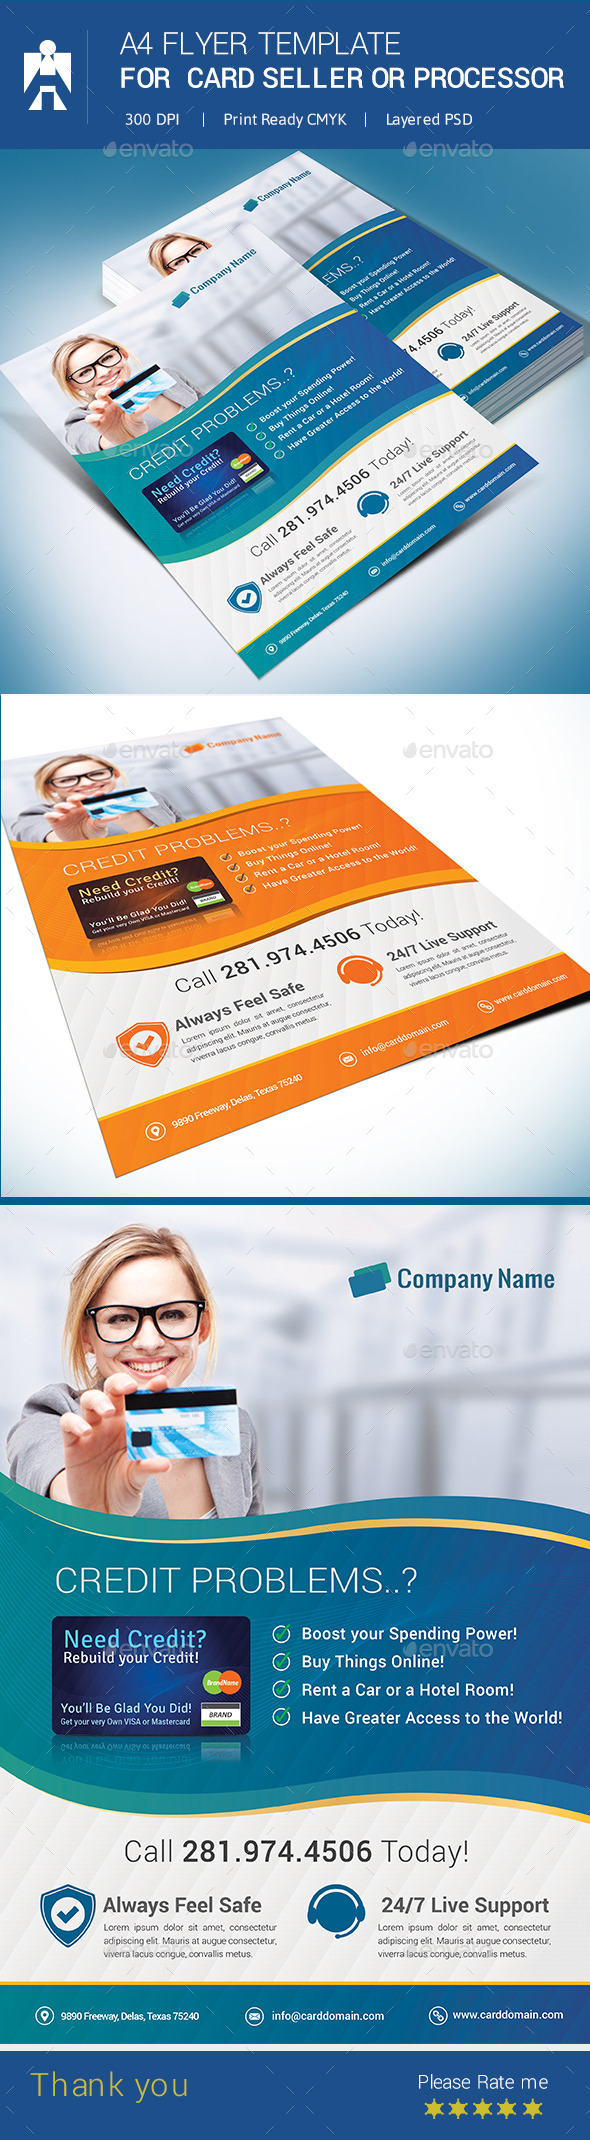 GraphicRiver A4 Flyer for Debit Card or Credit Card Seller 8832549